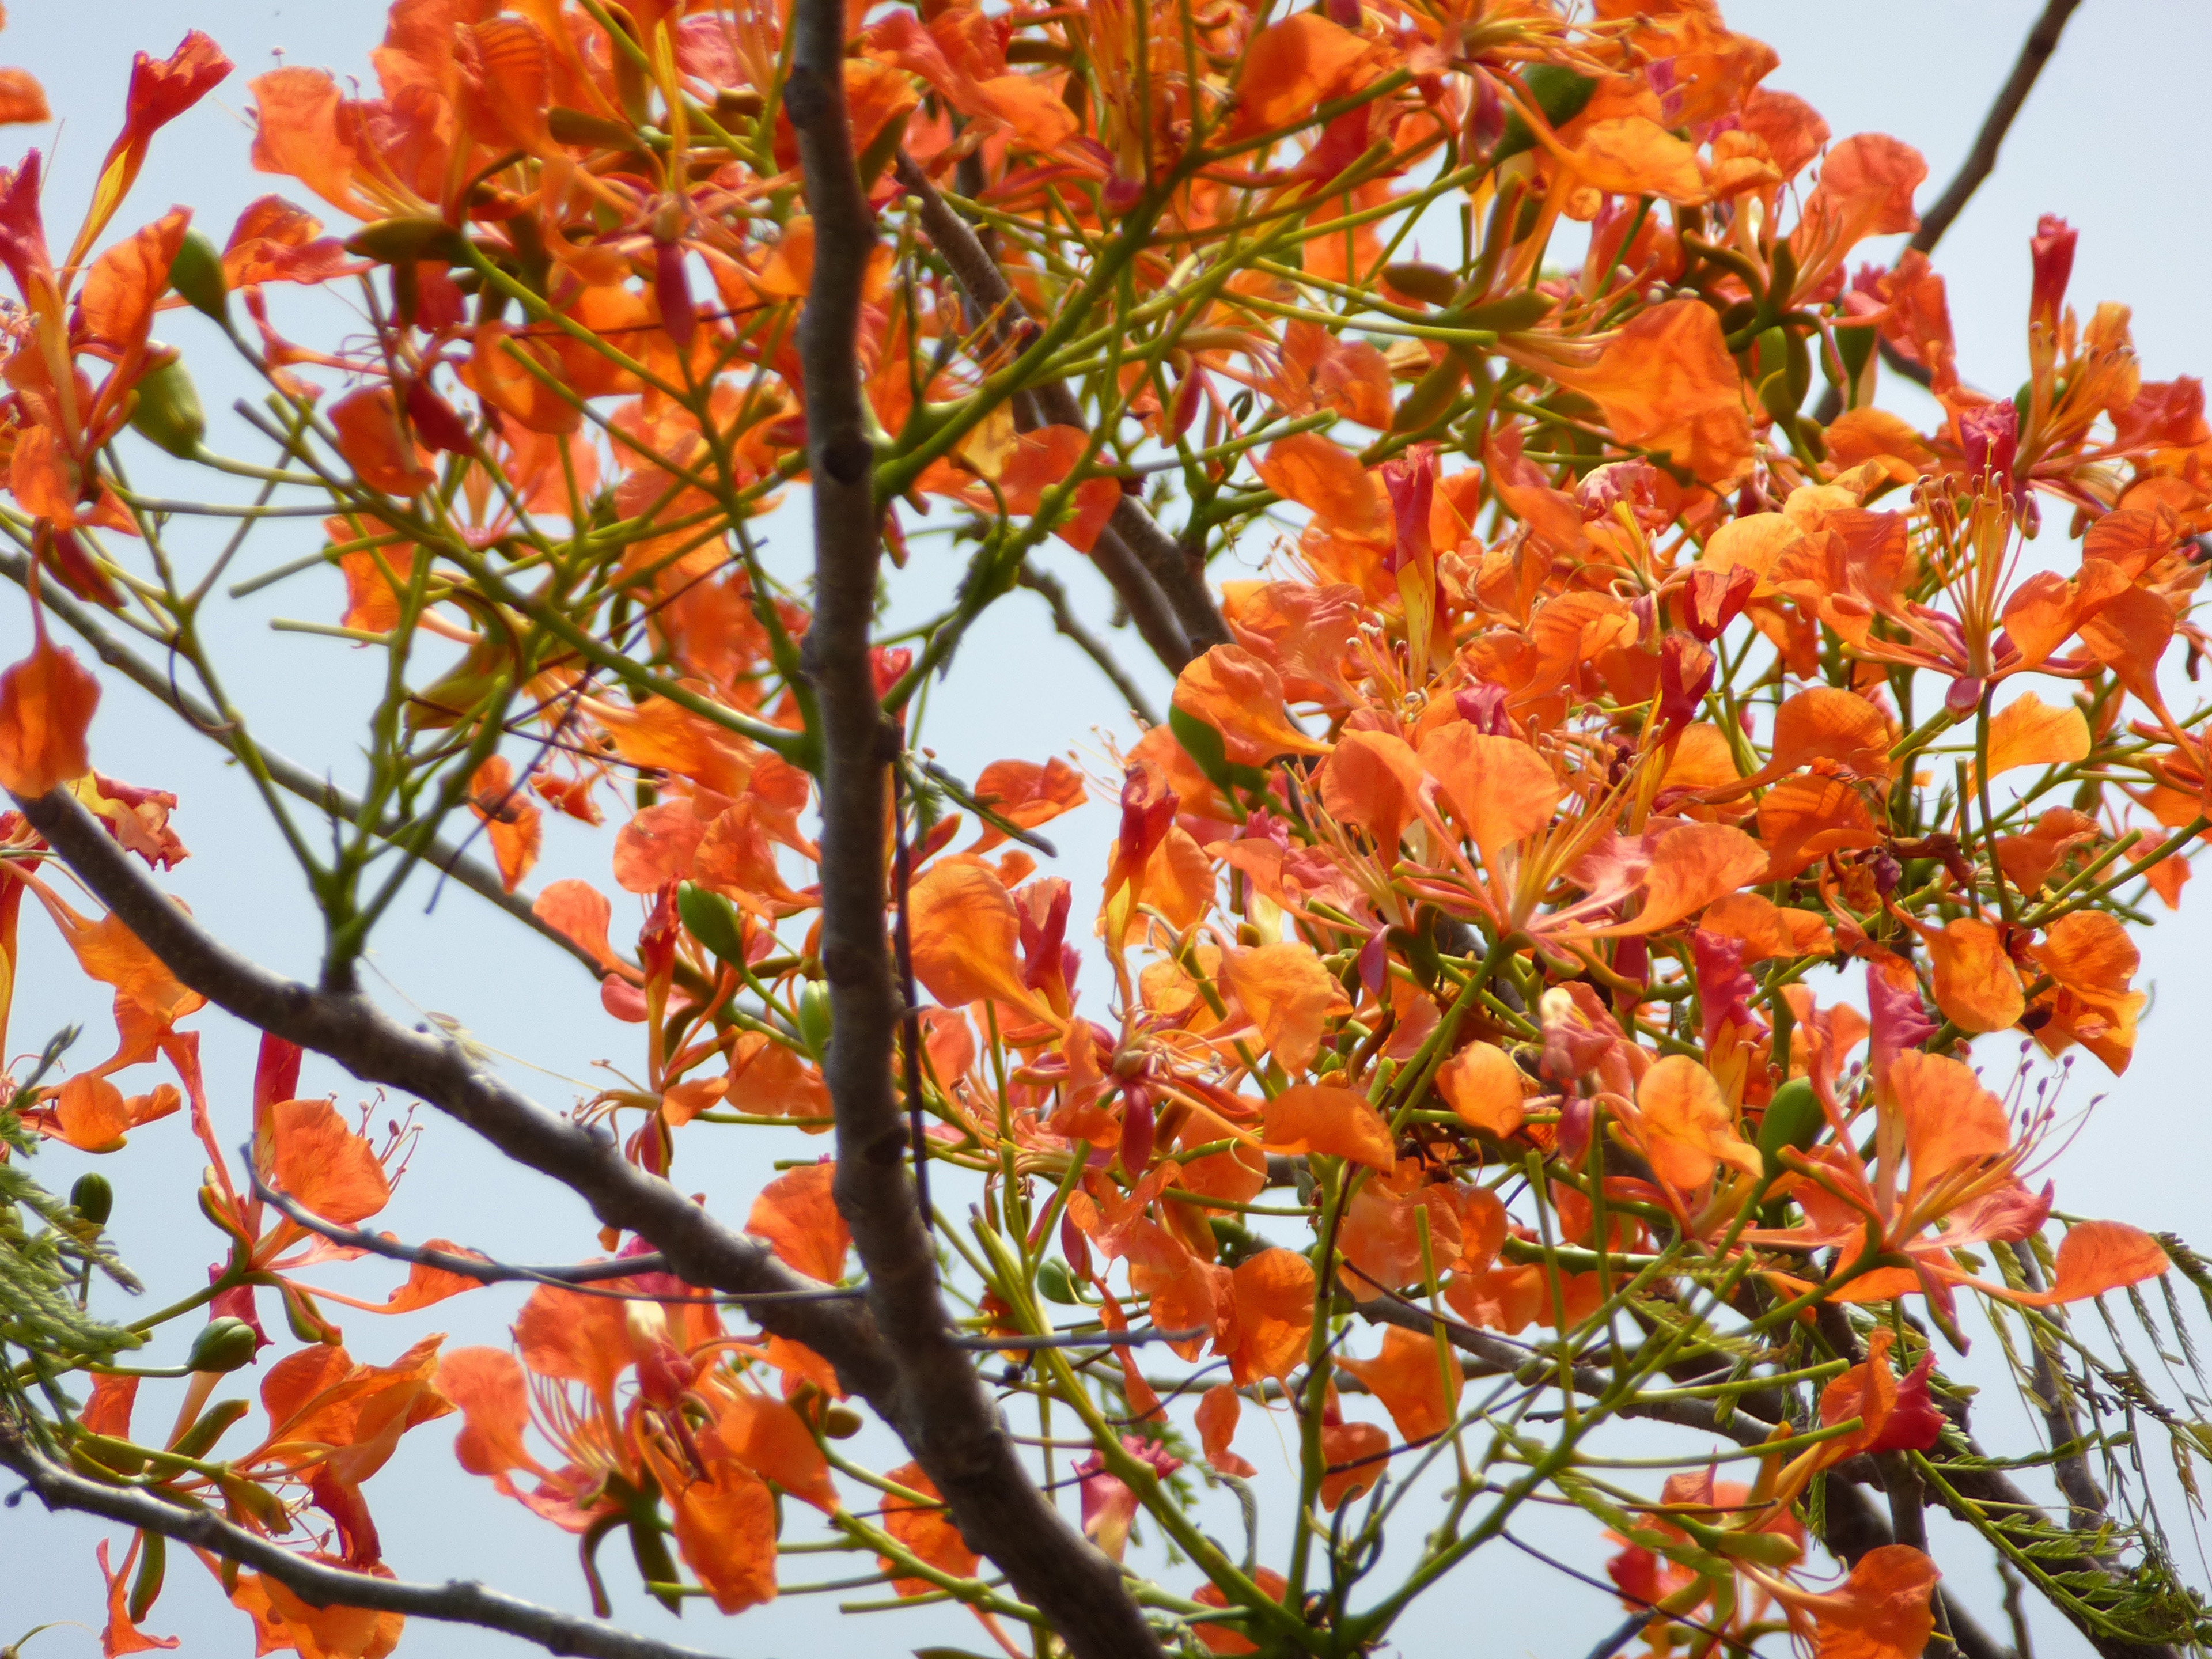 Colorful orange flowers of the Flame tree, Royal poinciana, a popular ornamental tree cultivated in gardens for their showy flowers